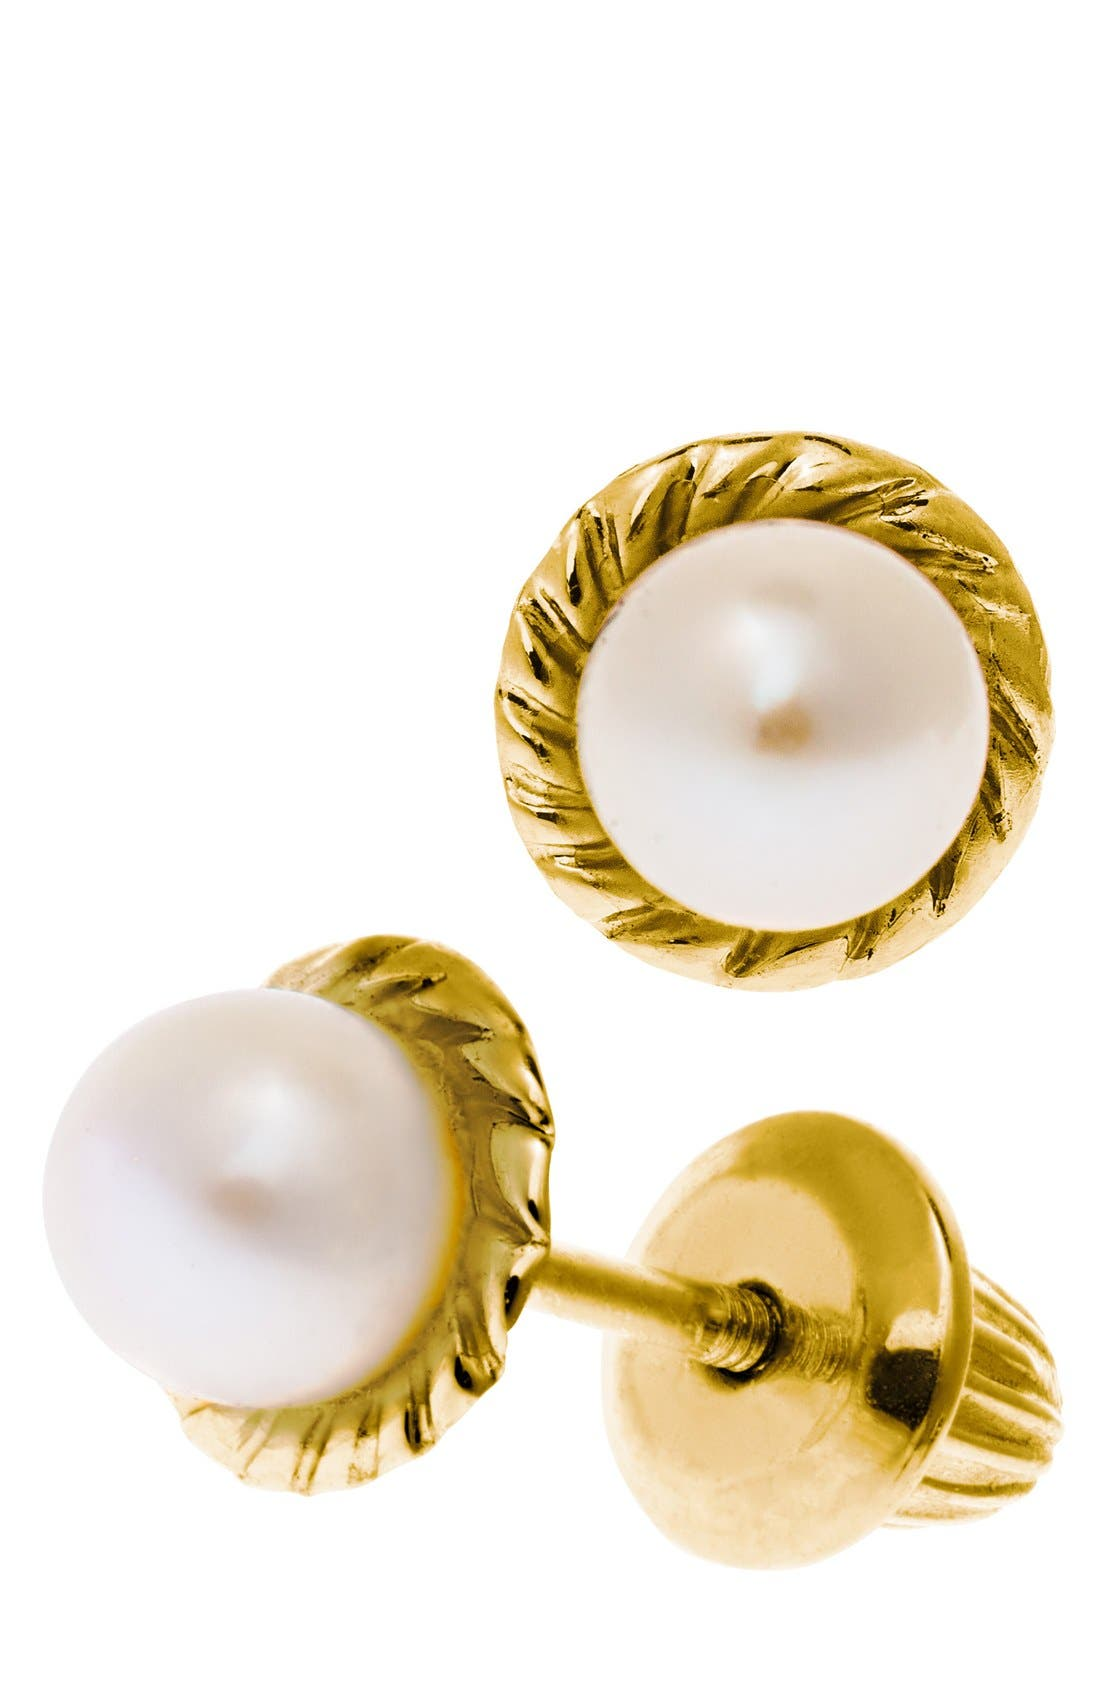 14k Yellow Gold & Cultured Pearl Earrings,                             Alternate thumbnail 3, color,                             WHITE